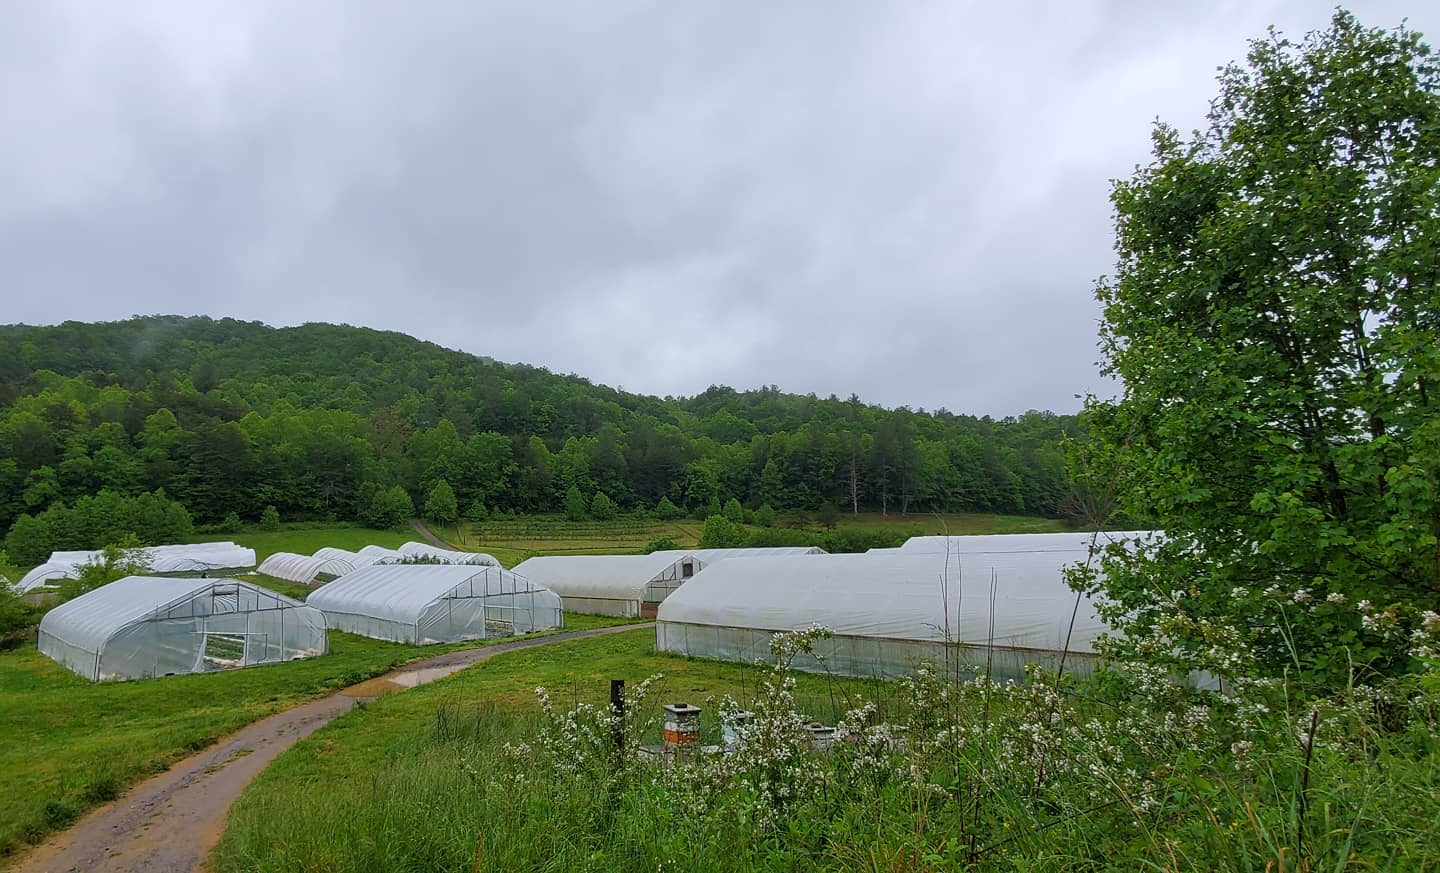 Farm Happenings for May 26, 2020: lackadaisical worry